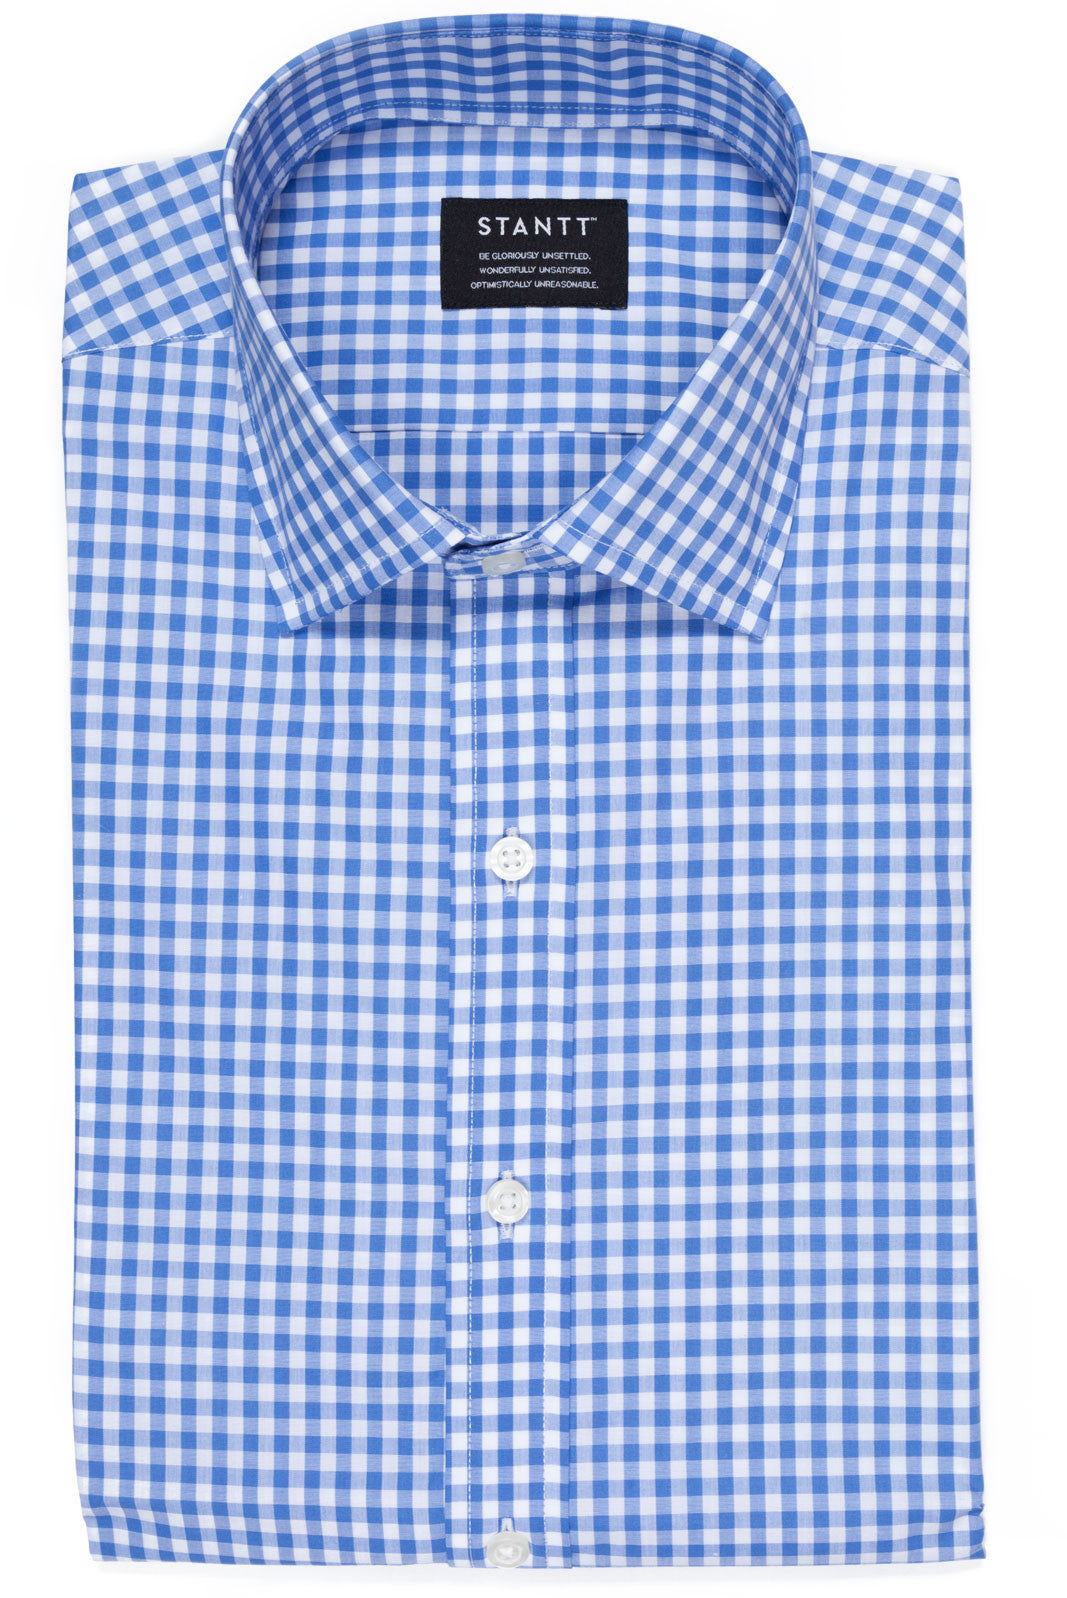 Pacific Blue Gingham